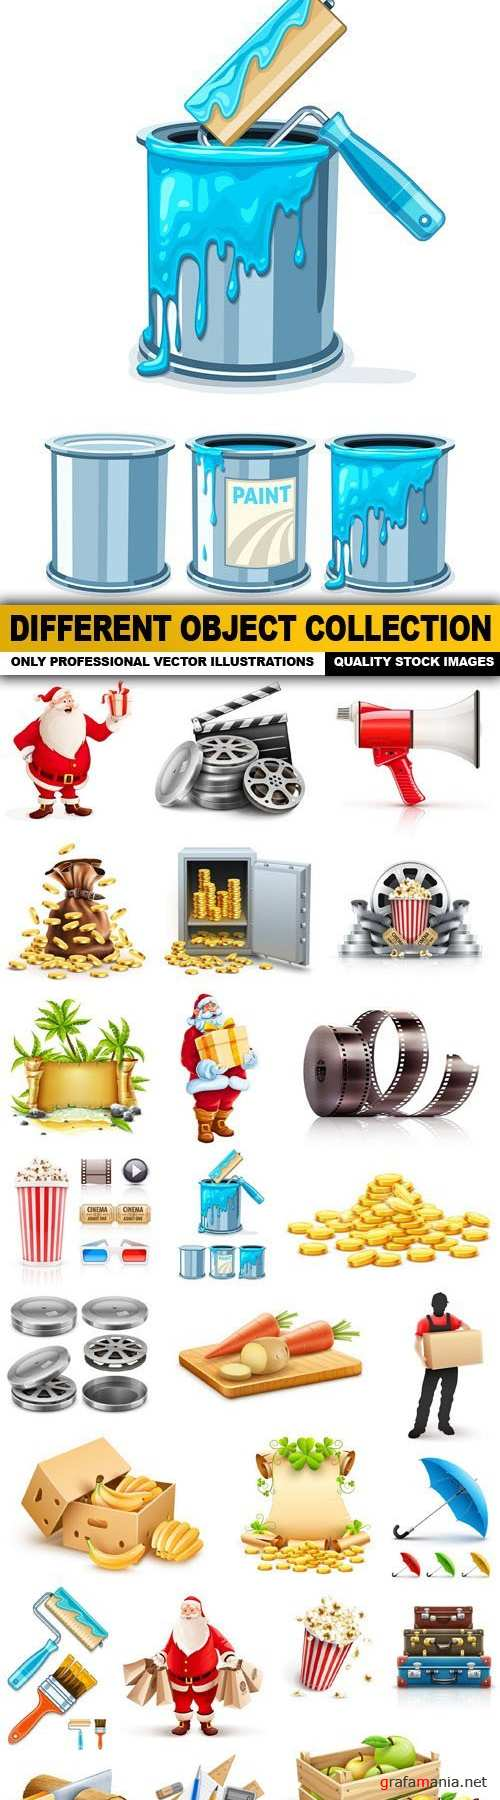 Different Object Collection - 25 Vector